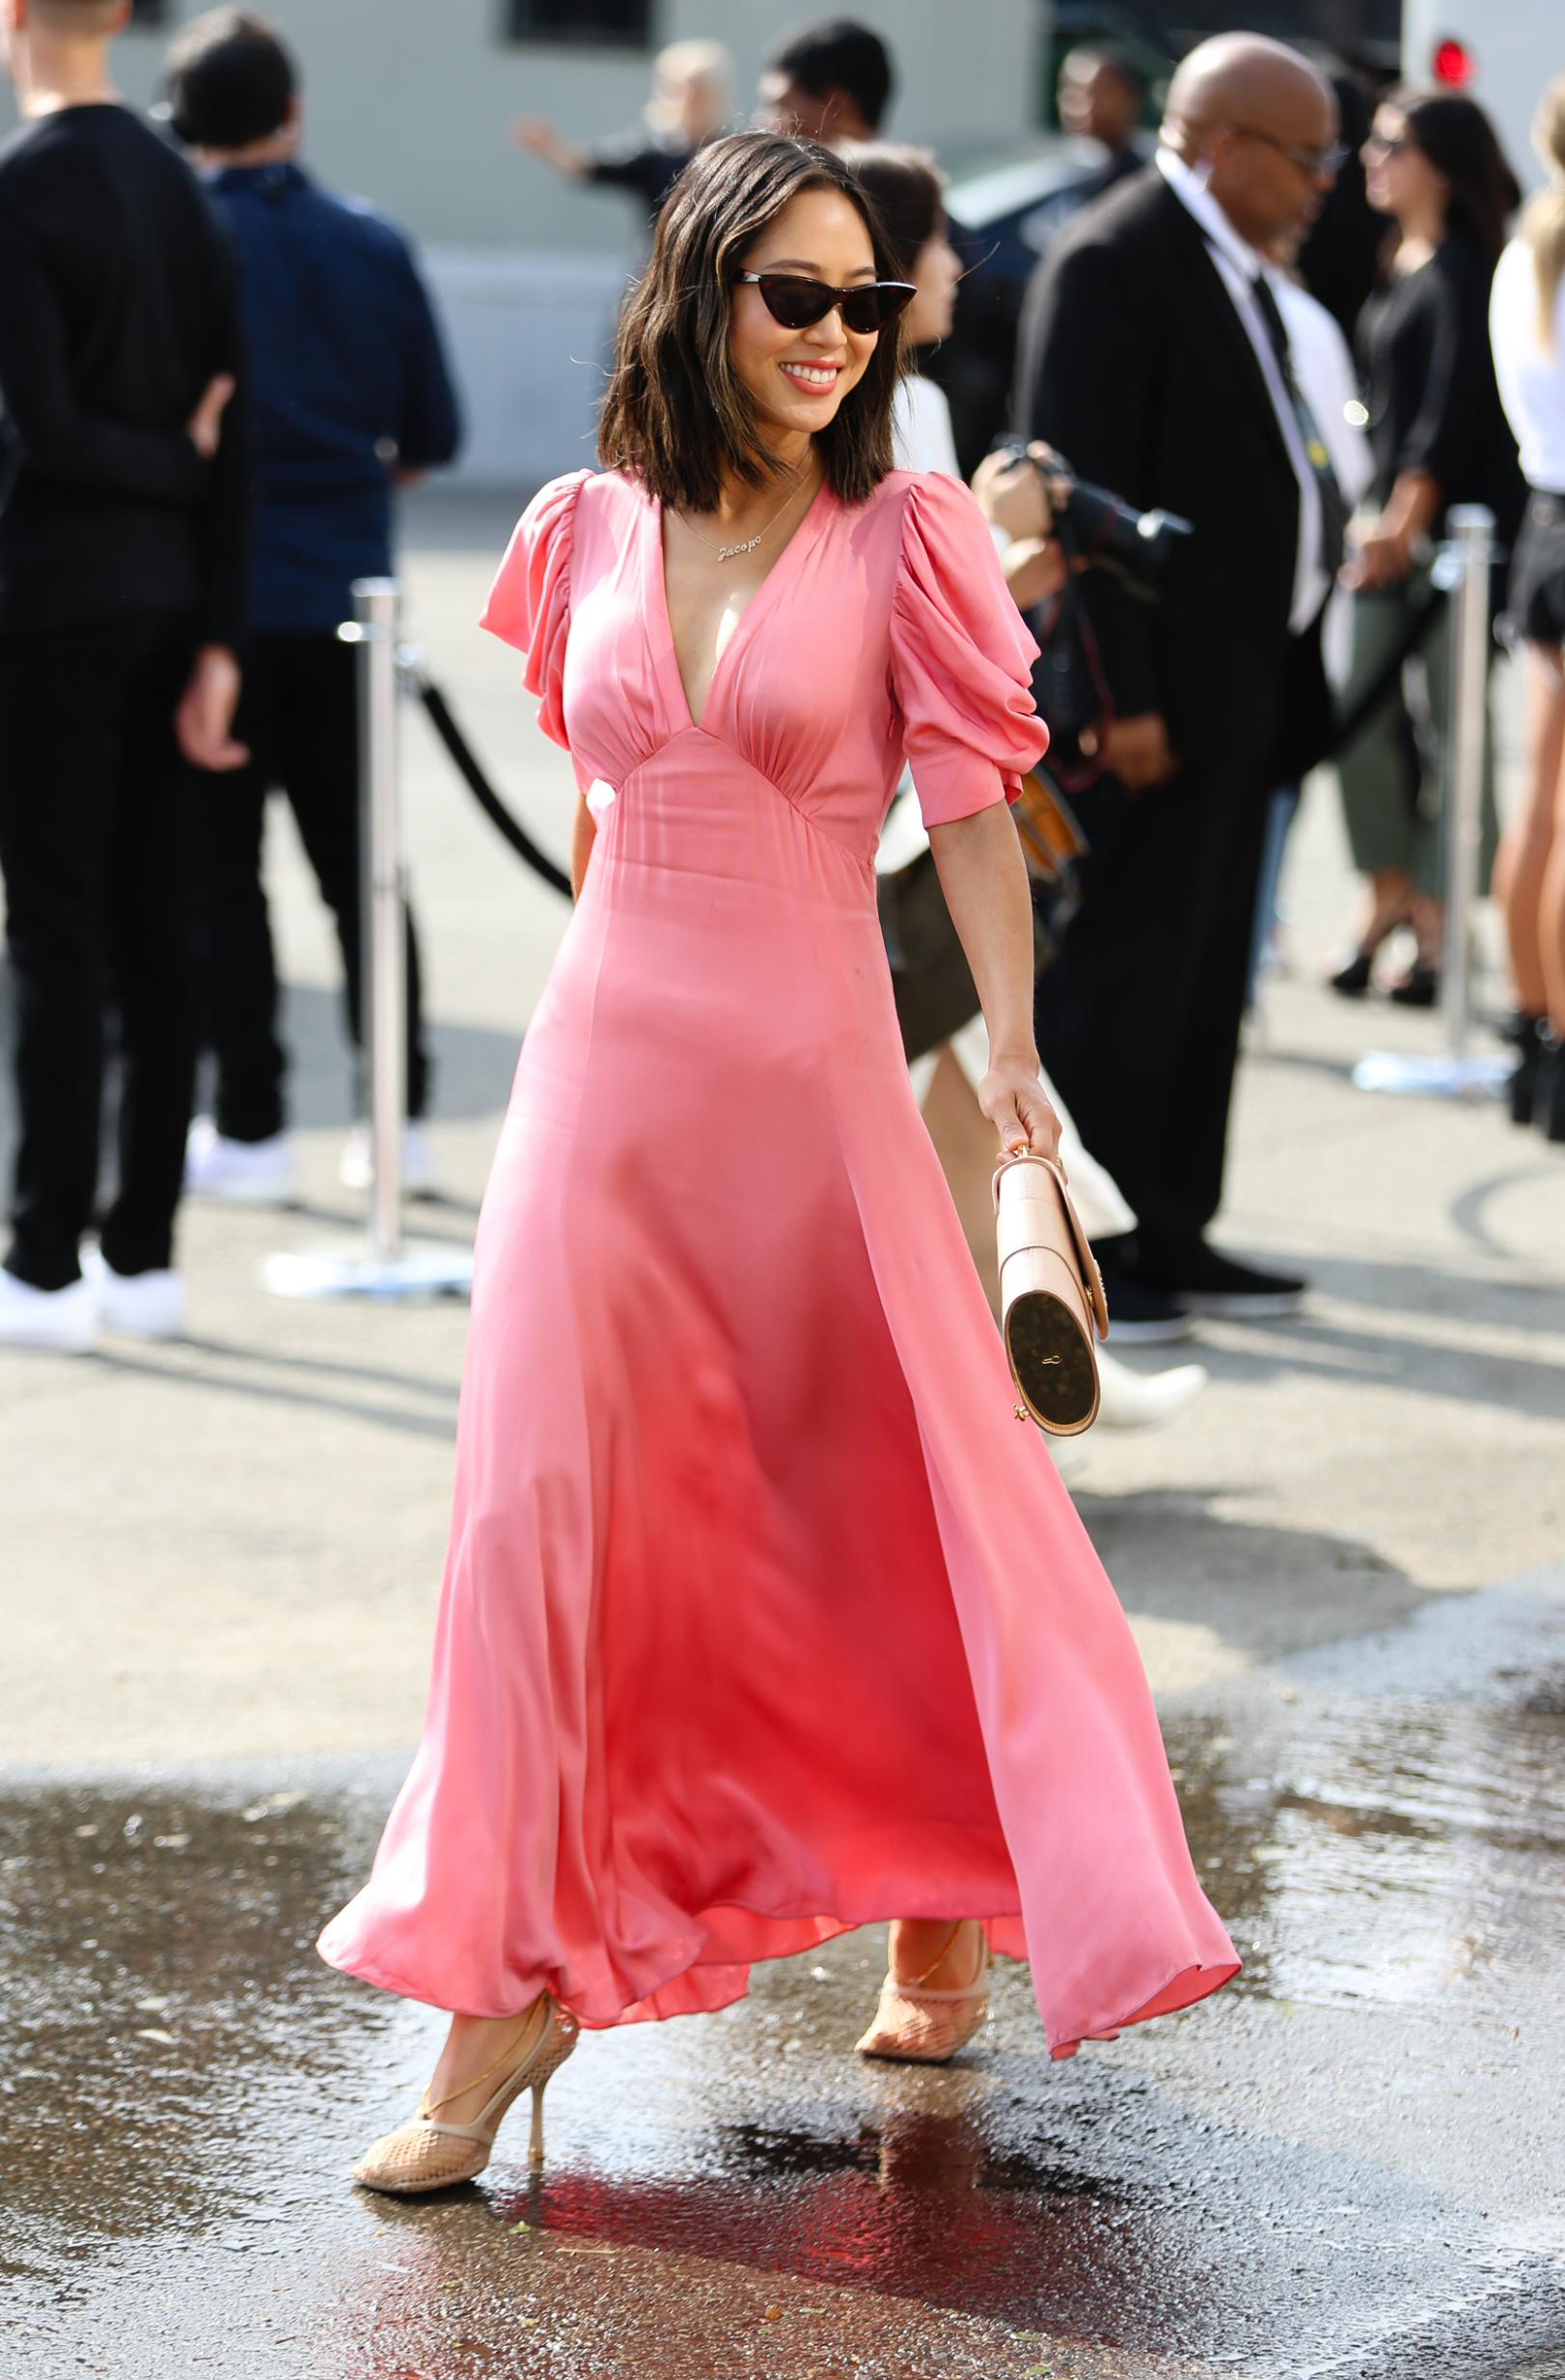 NEW YORK, NEW YORK - SEPTEMBER 11: Aimee Song is seen wearing a pink dress during New York Fashion Week on September 11, 2019 in New York City. (Photo by Donell Woodson/Getty Images)